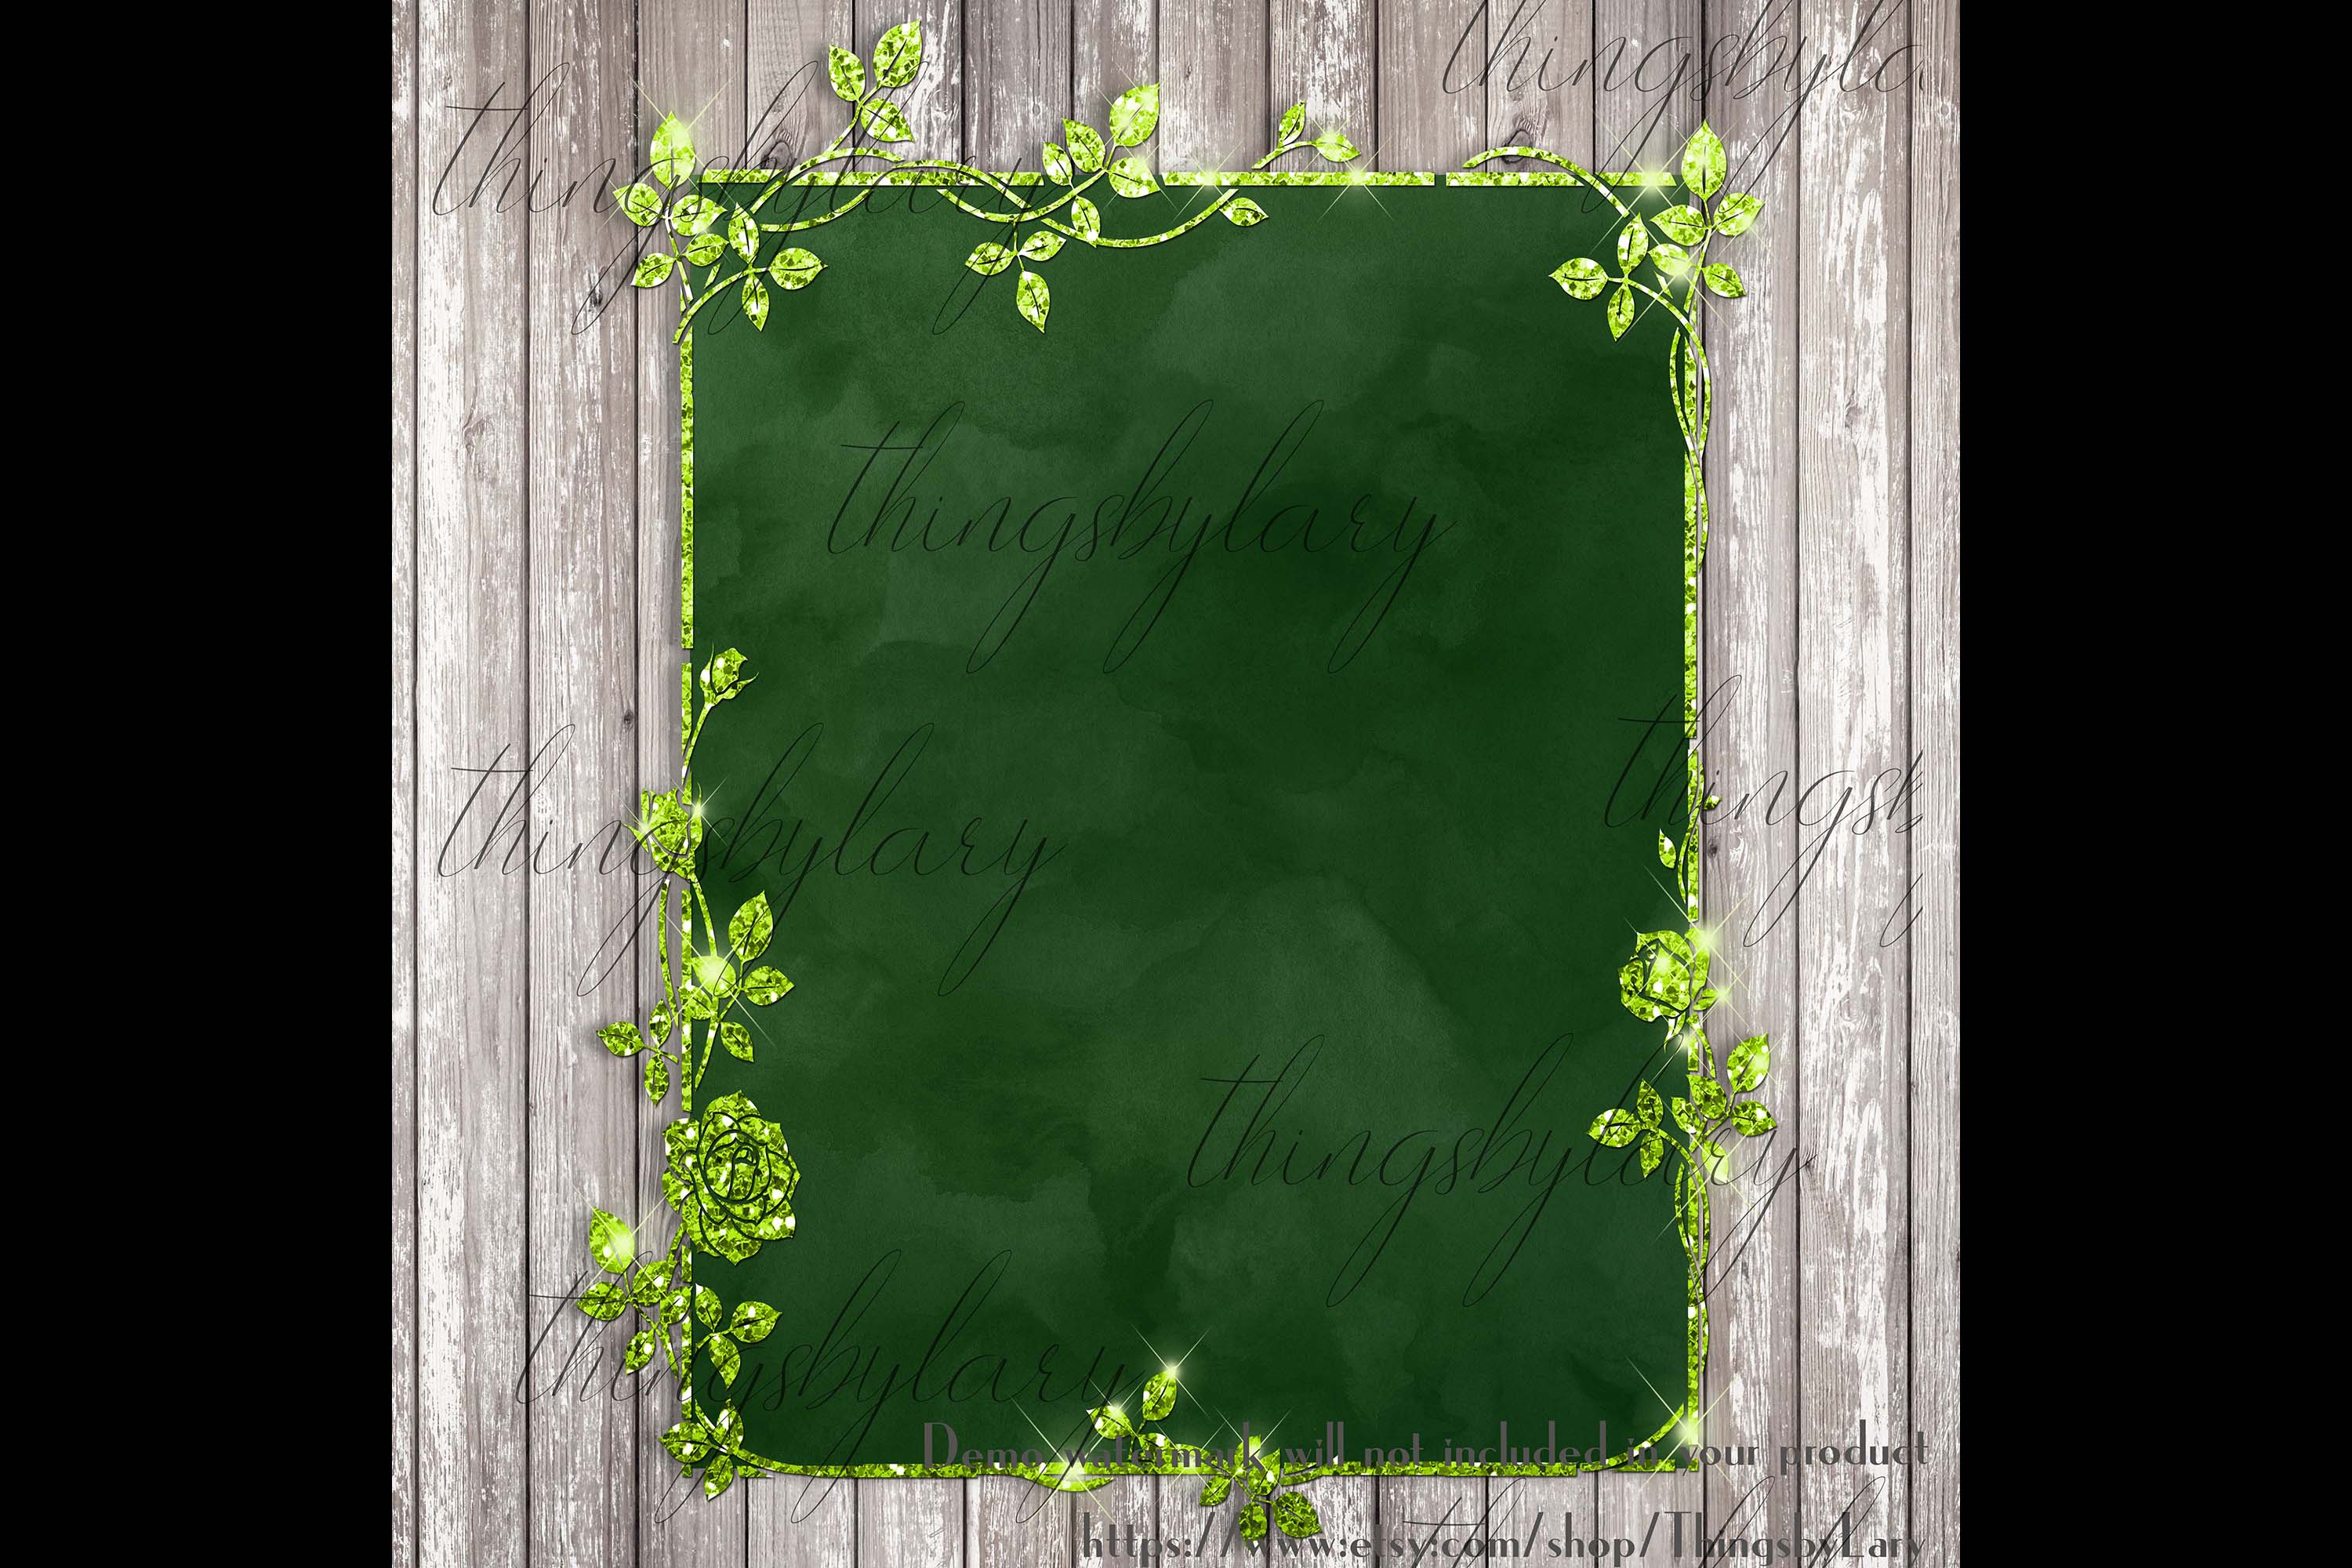 18 Glitter and Watercolor Leaf Branch Floral Frame Card example image 3